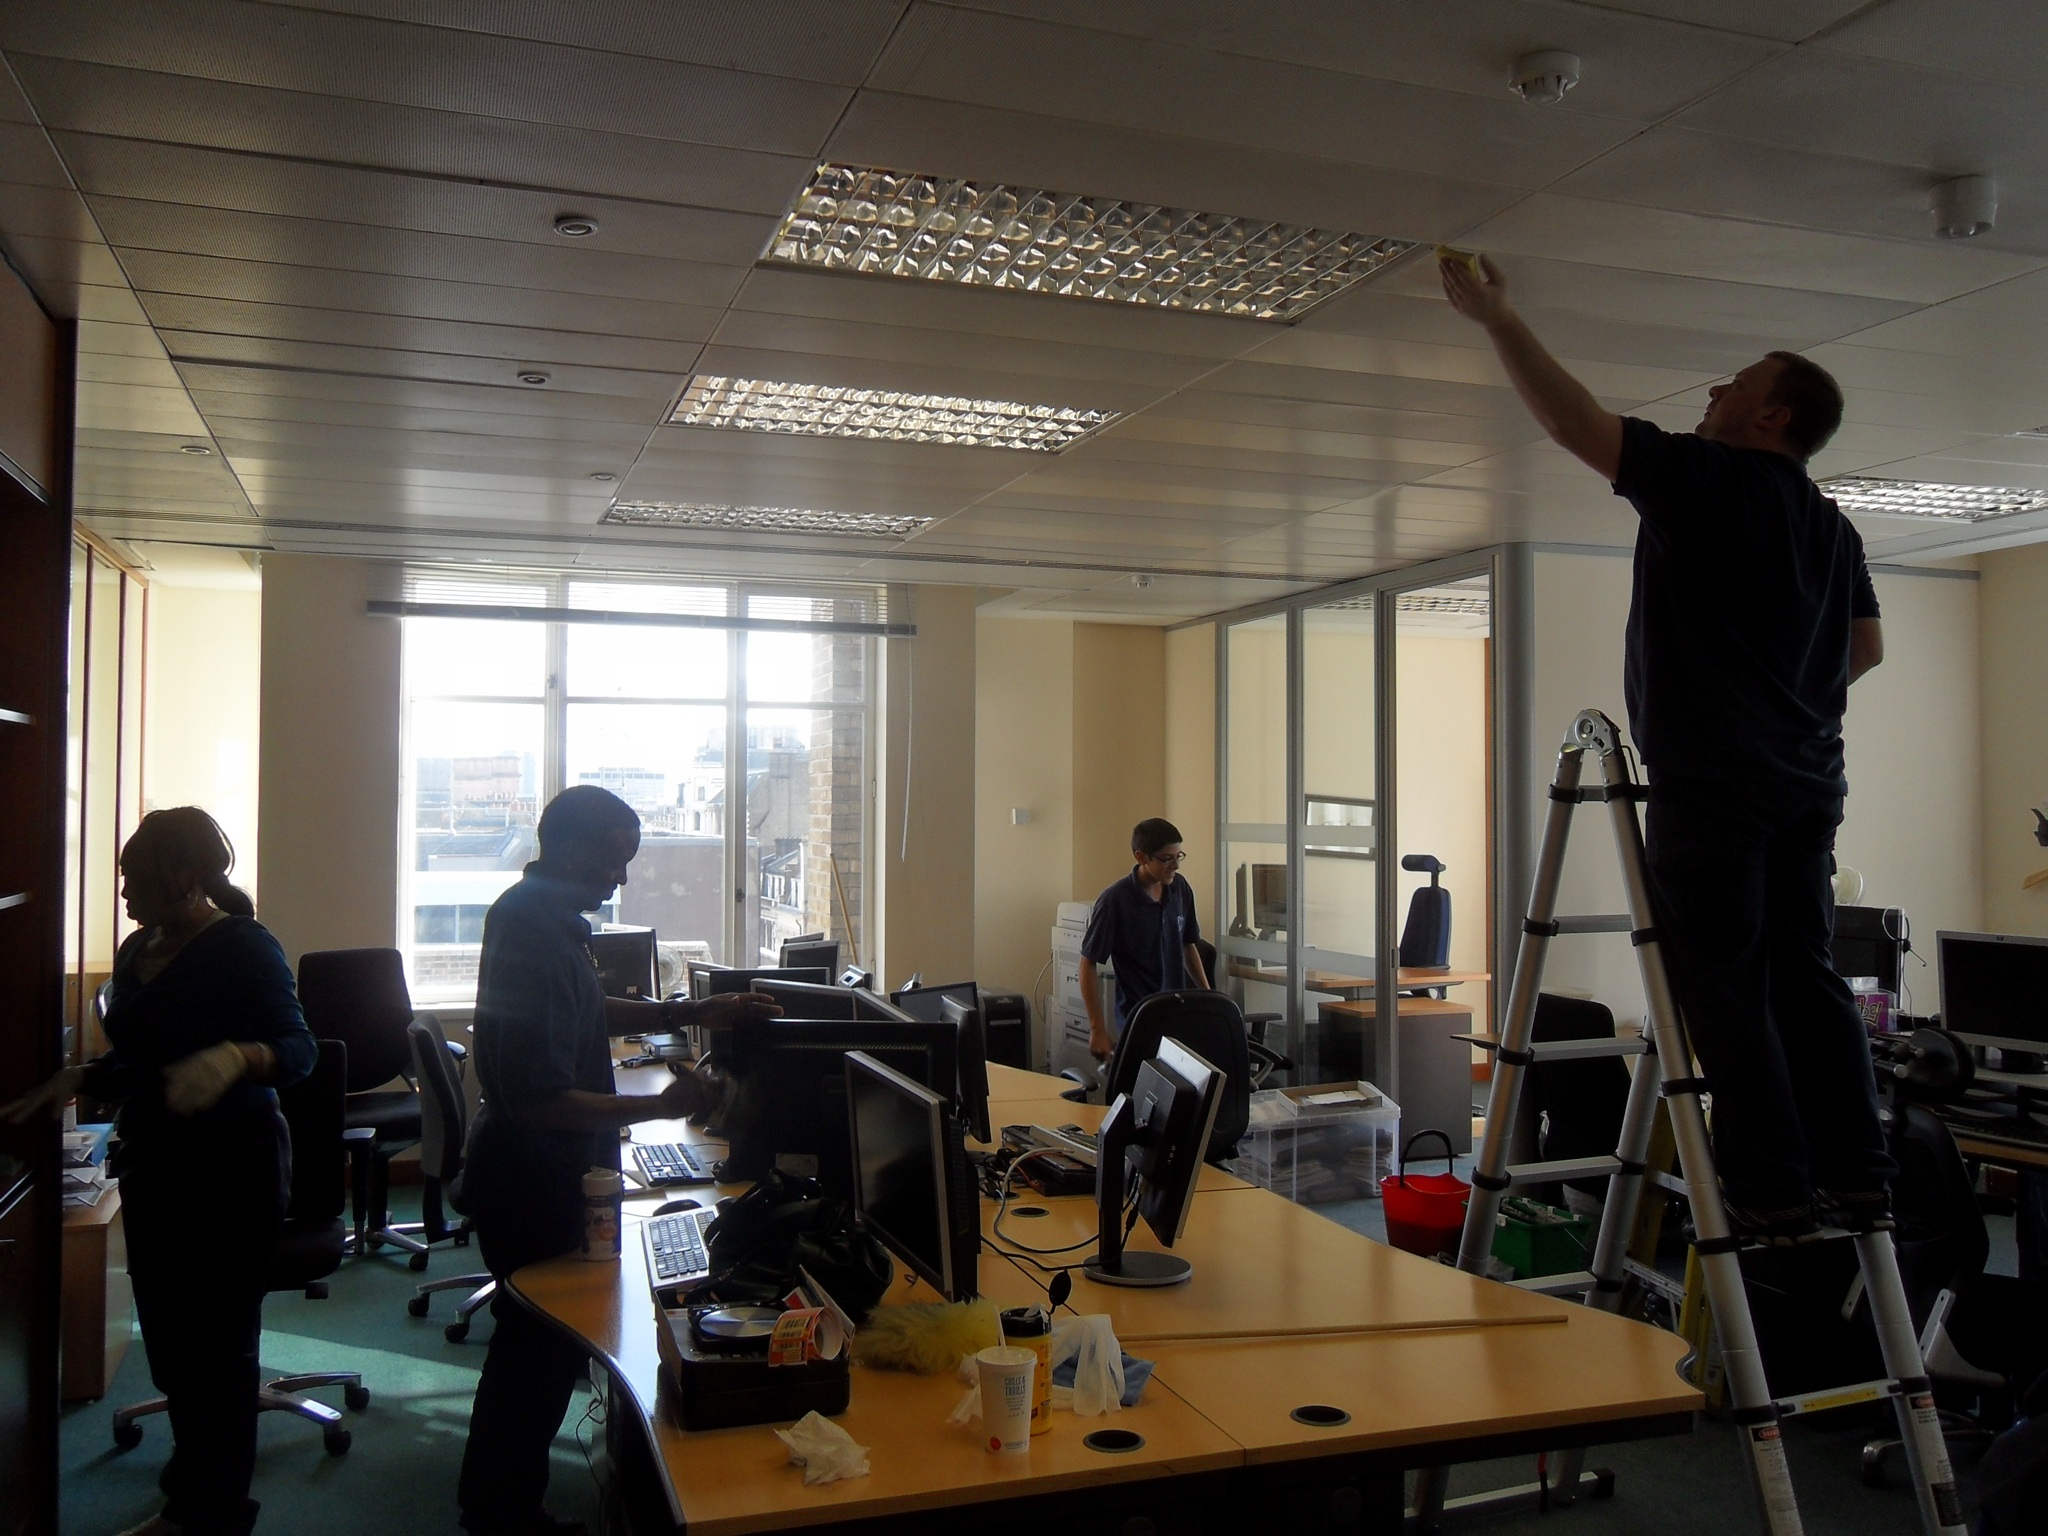 Office Cleaning By Nationwide Services